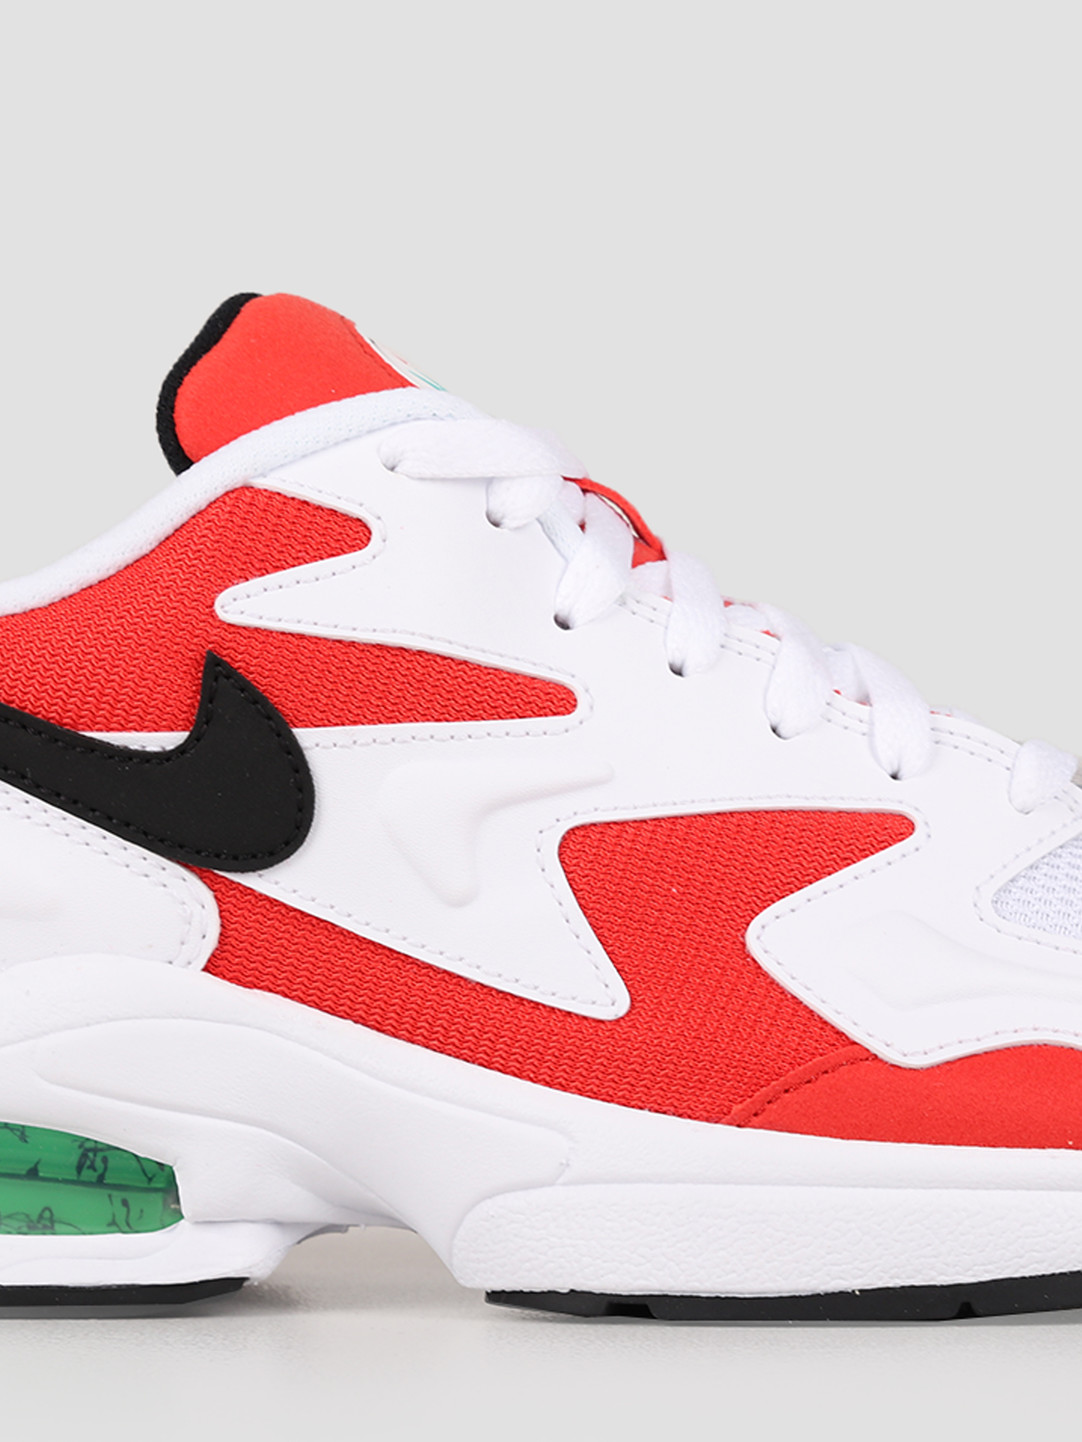 Nike Nike Air Max 2 Light White Black Habanero Red Cool Grey AO1741-101